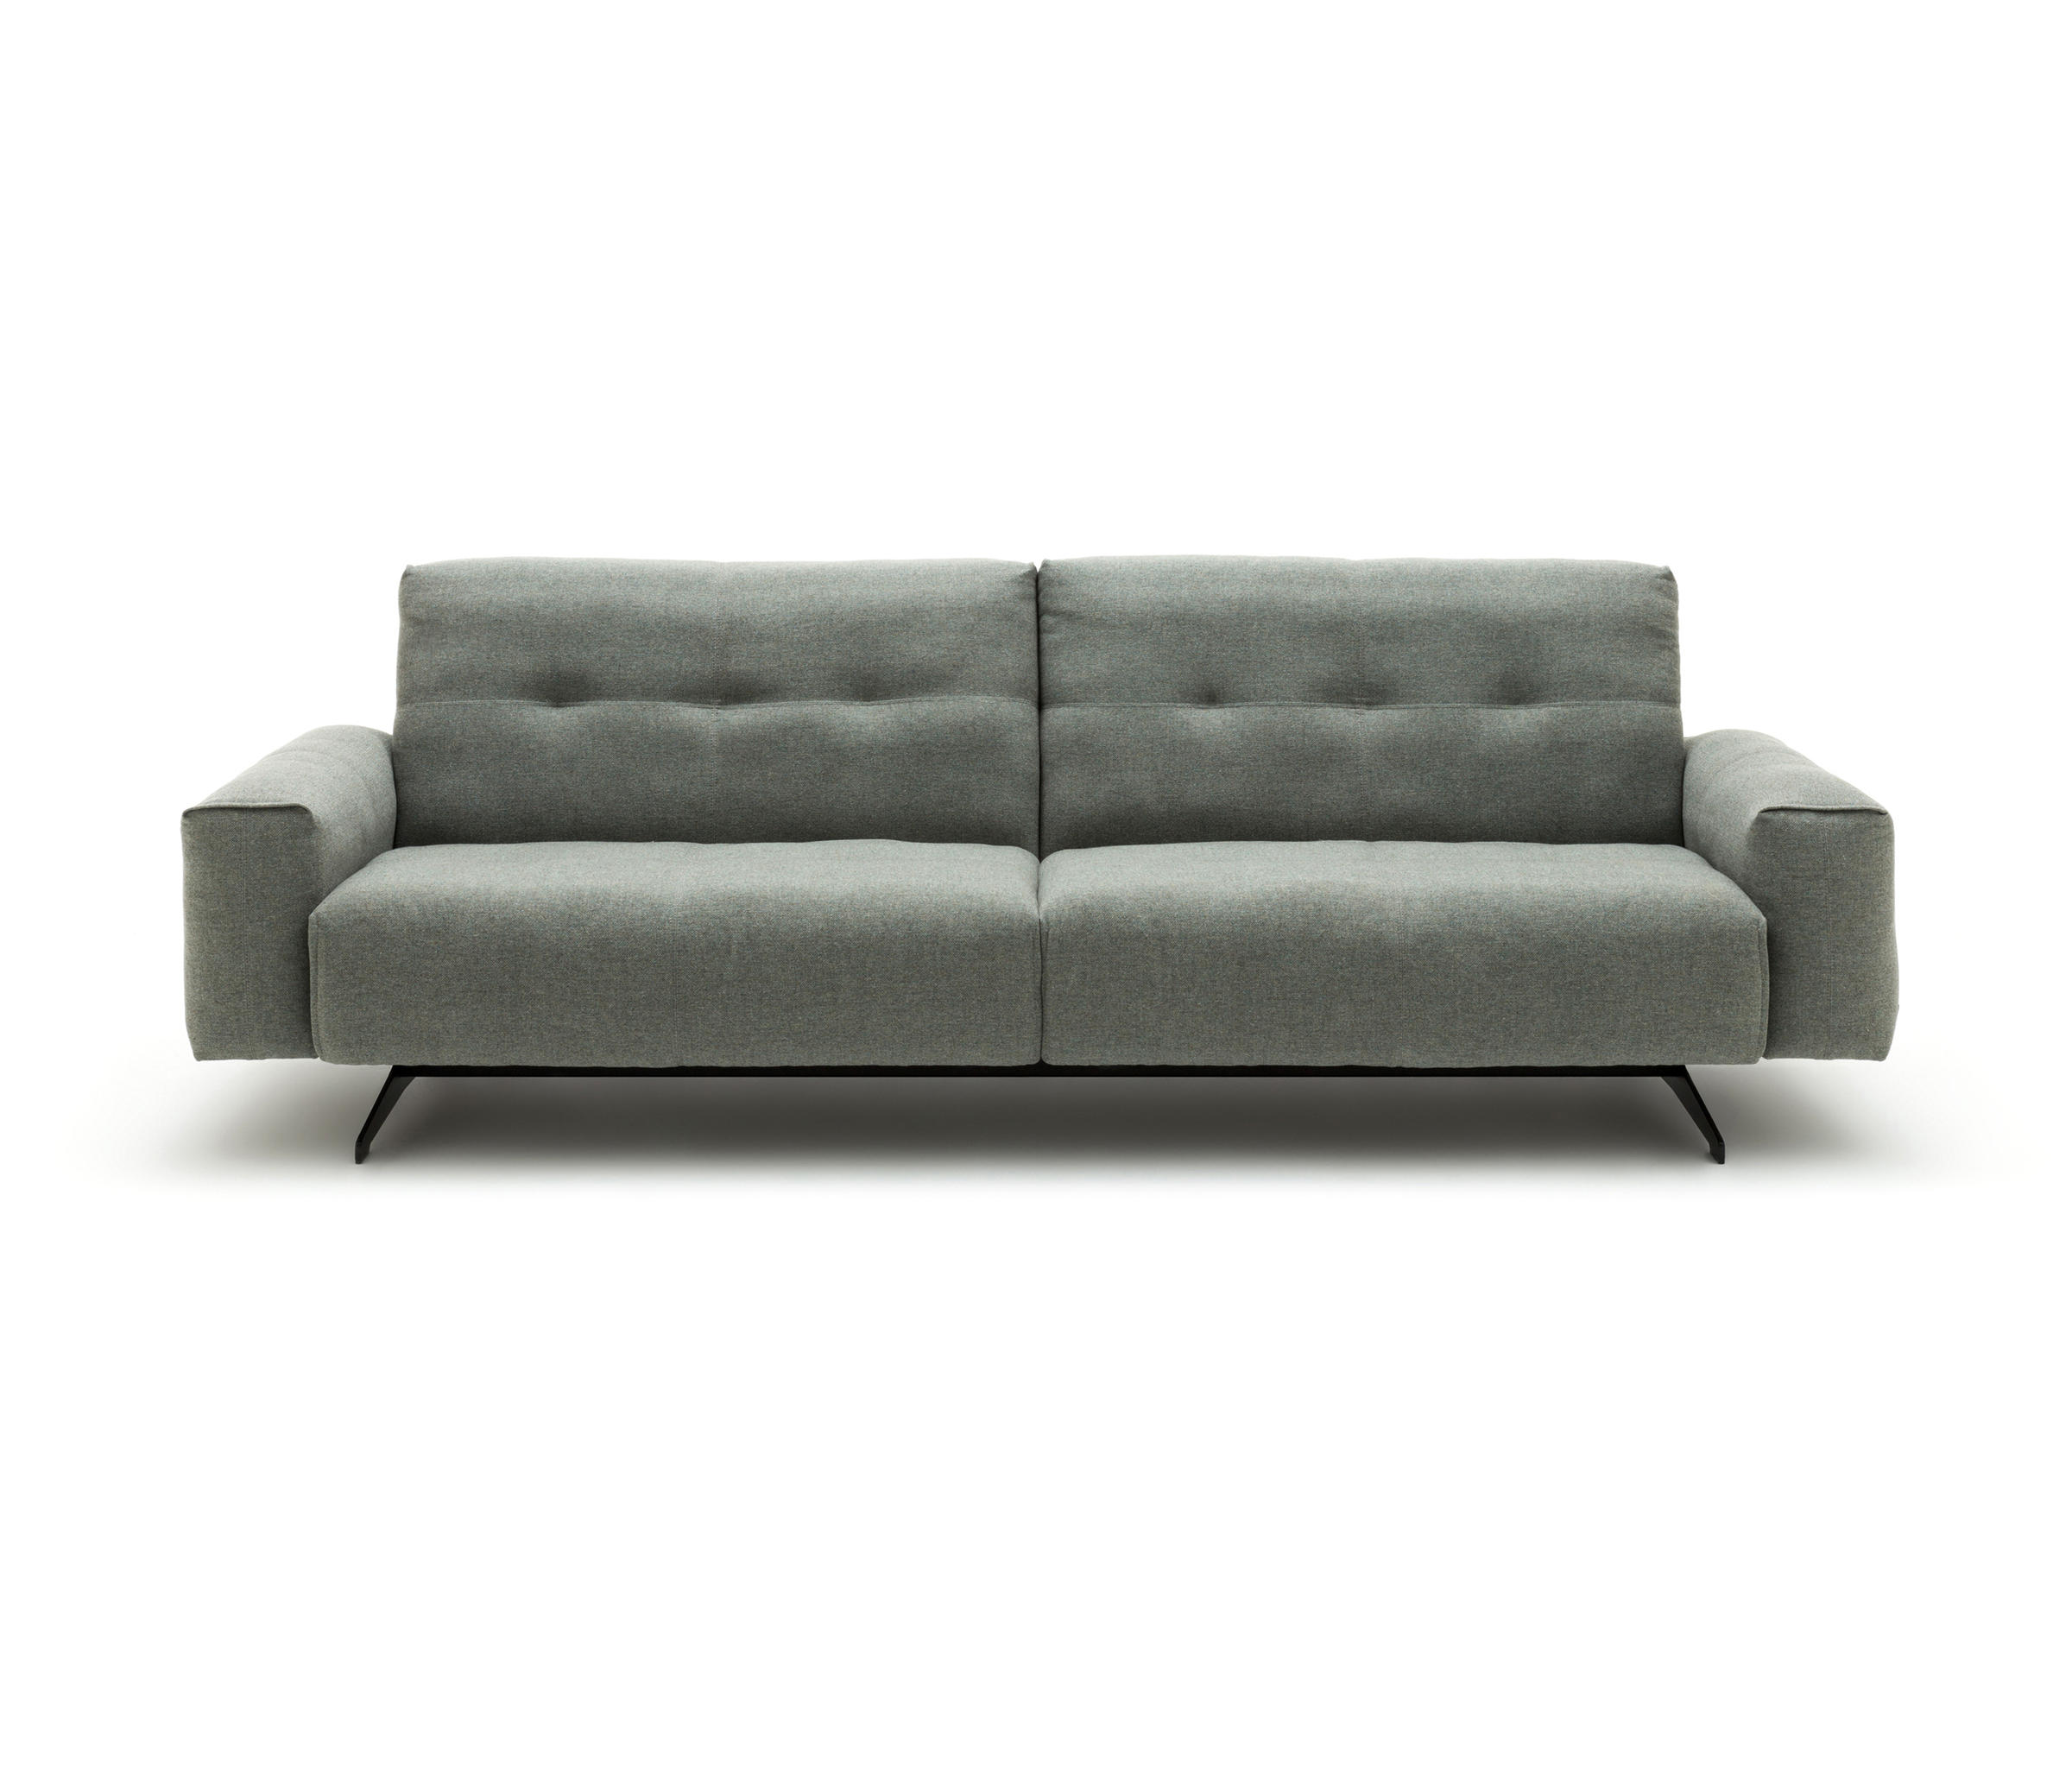 Rolf Benz Couch Rolf Benz 50 Sofas From Rolf Benz Architonic